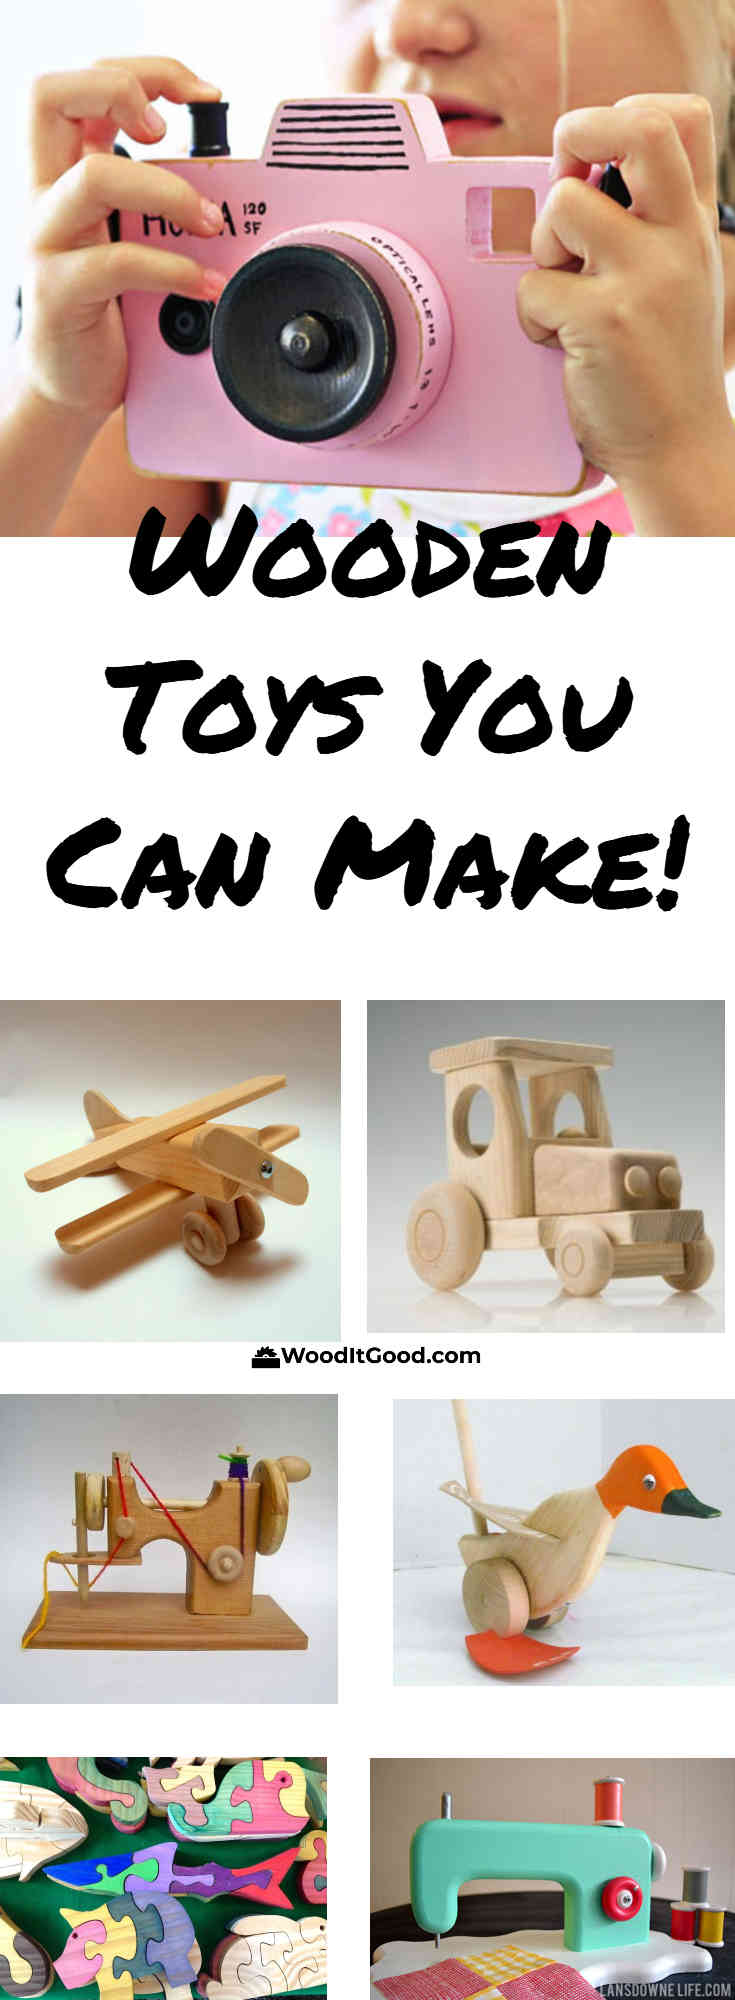 Wooden toys to make collage